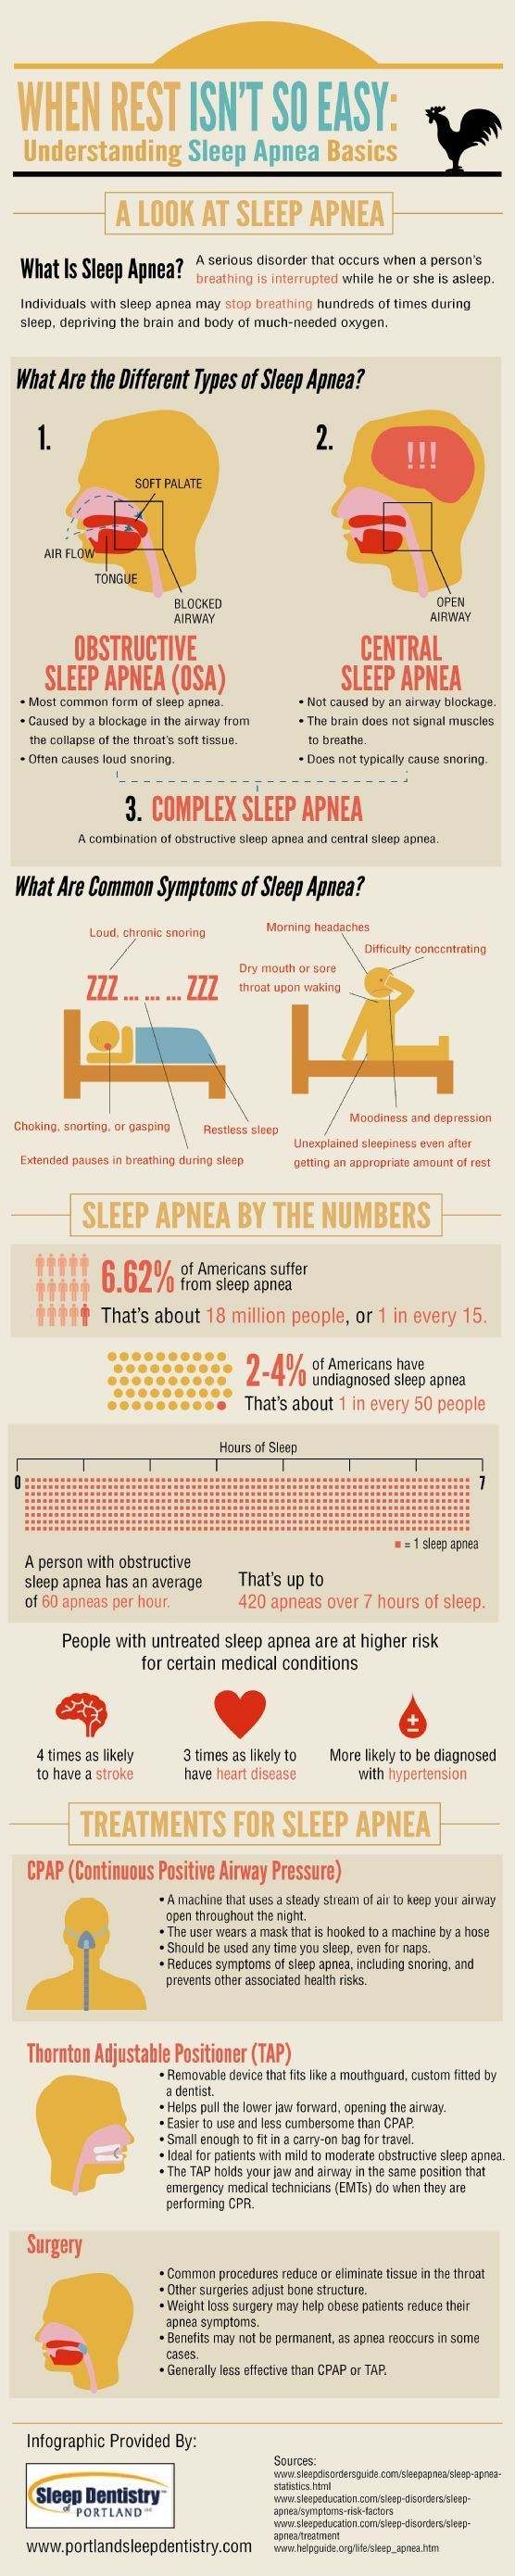 This goes into depth of the different types of sleep apnea and how it affects you. It also lists the treatments that people affected should consider.